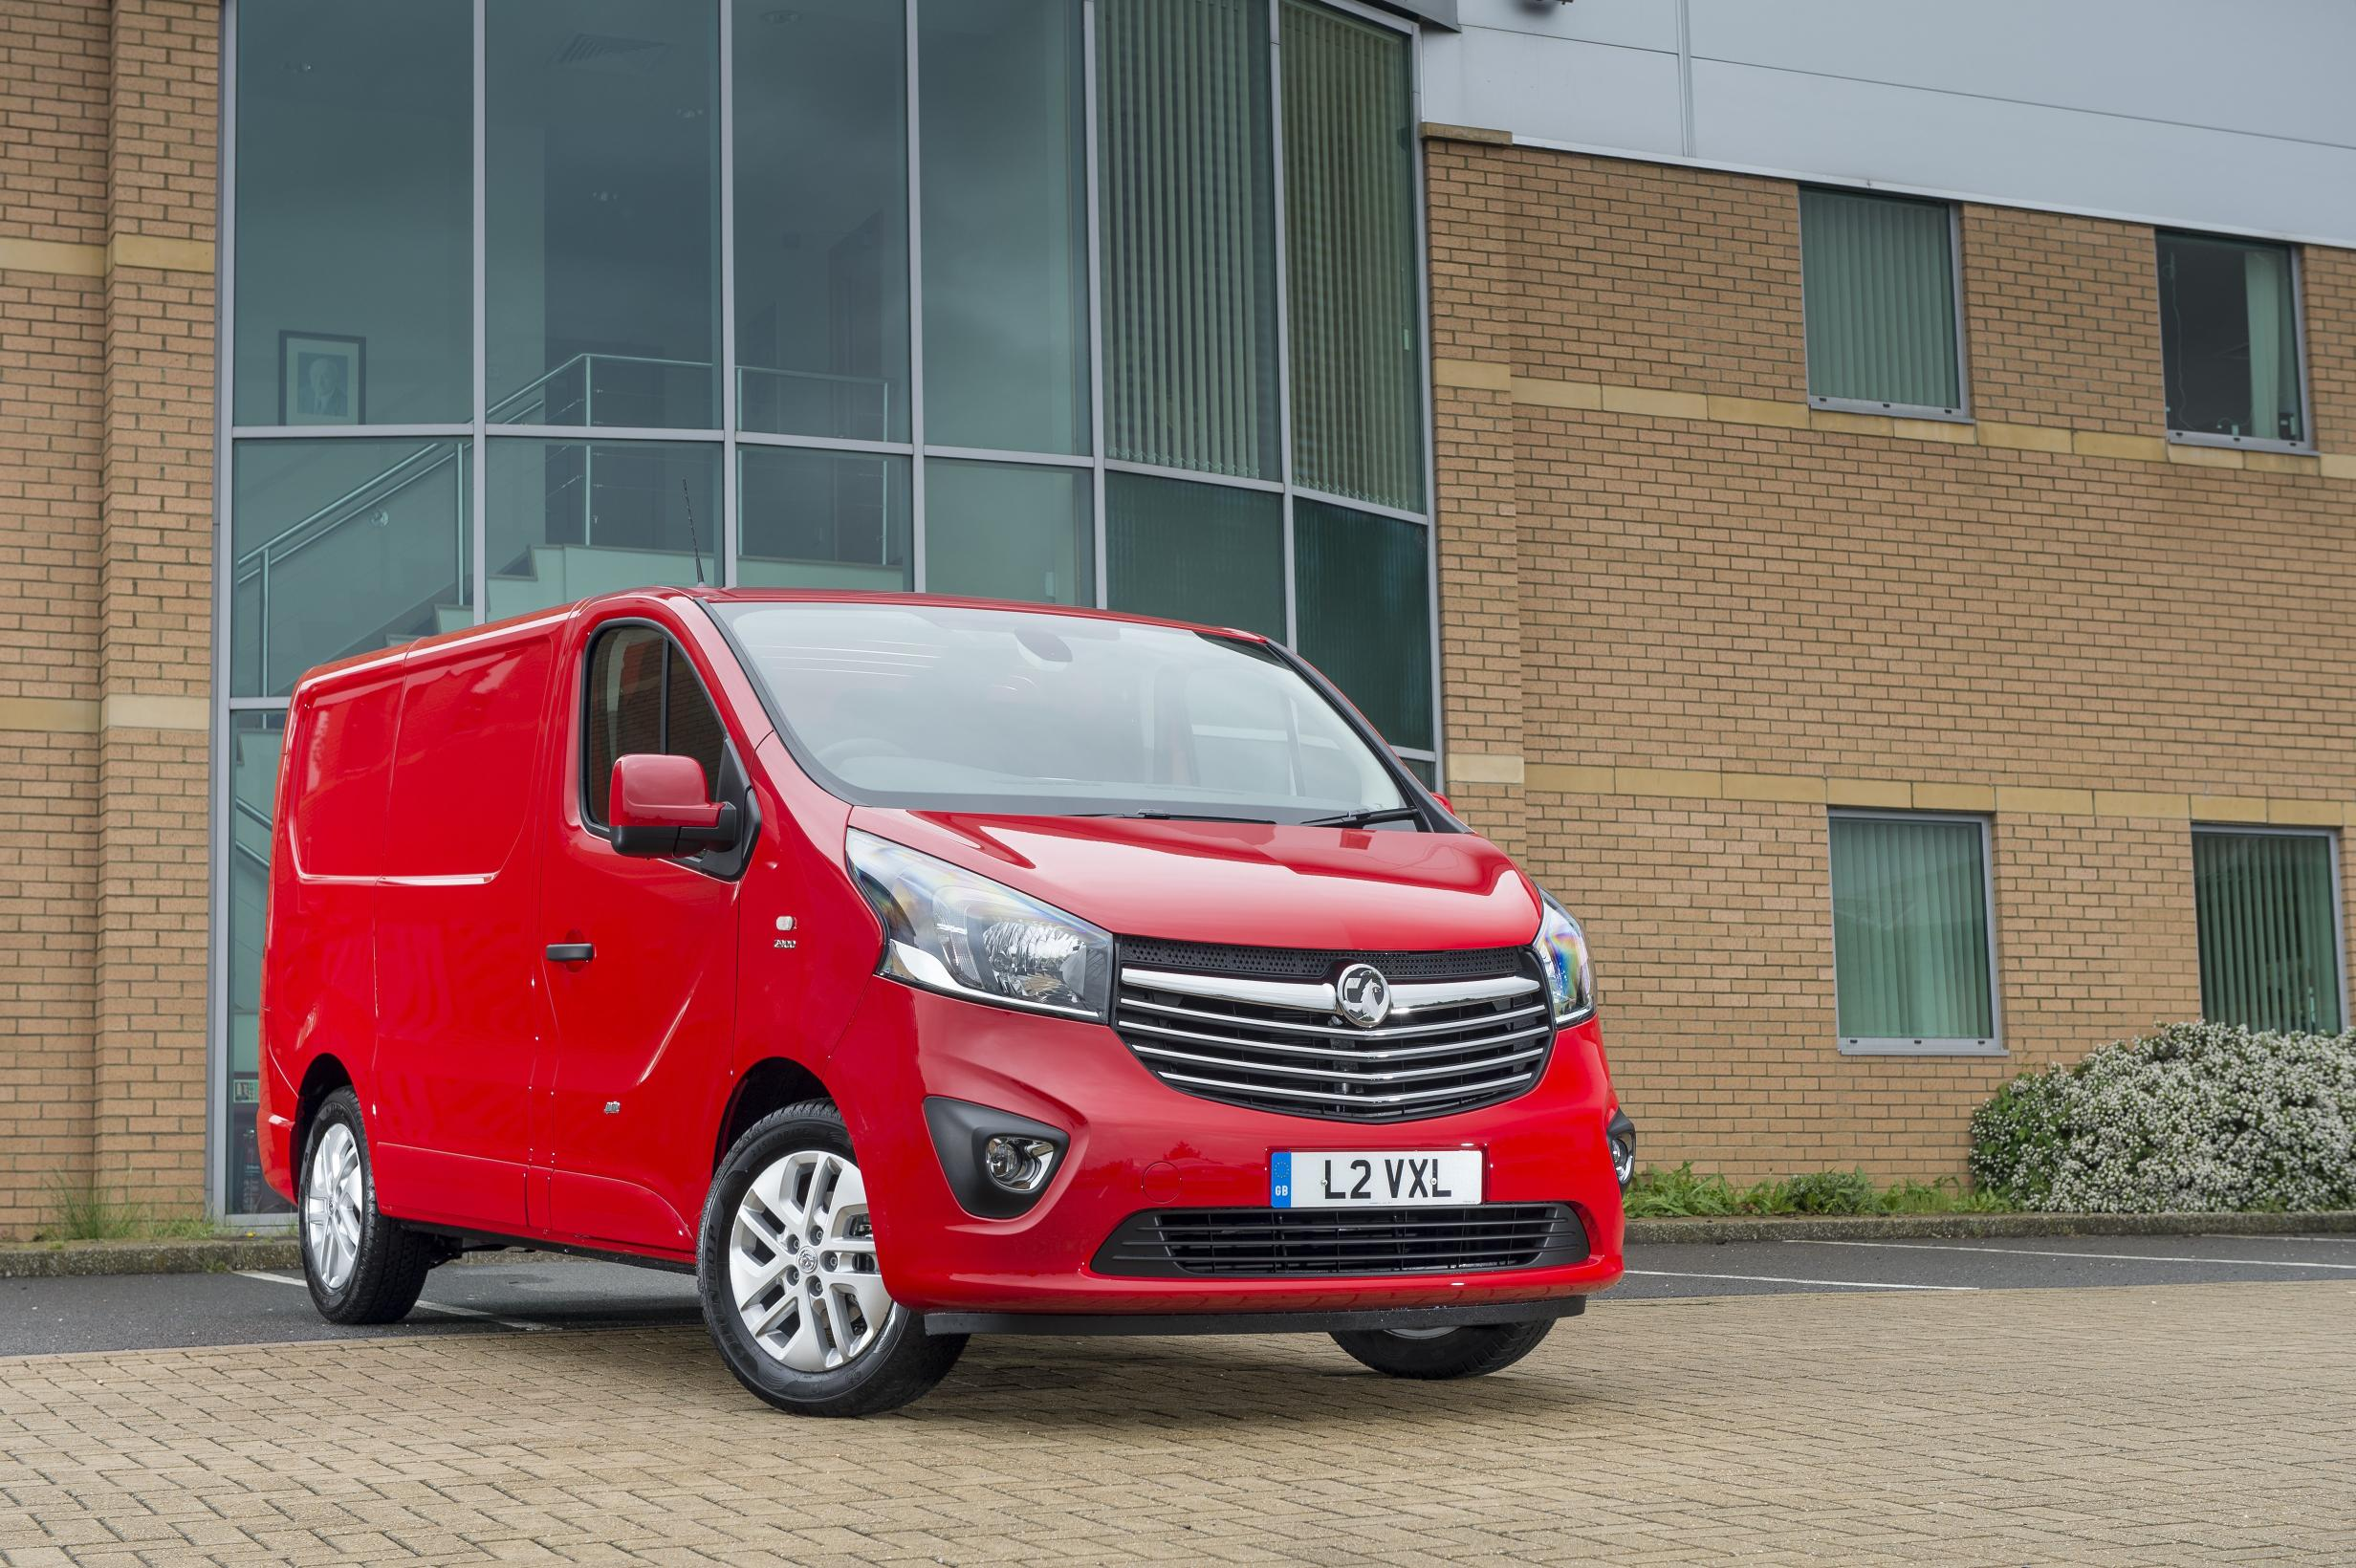 28a9996308884c Vauxhall Vivaro now available on business contract hire through Vauxhall  Finance